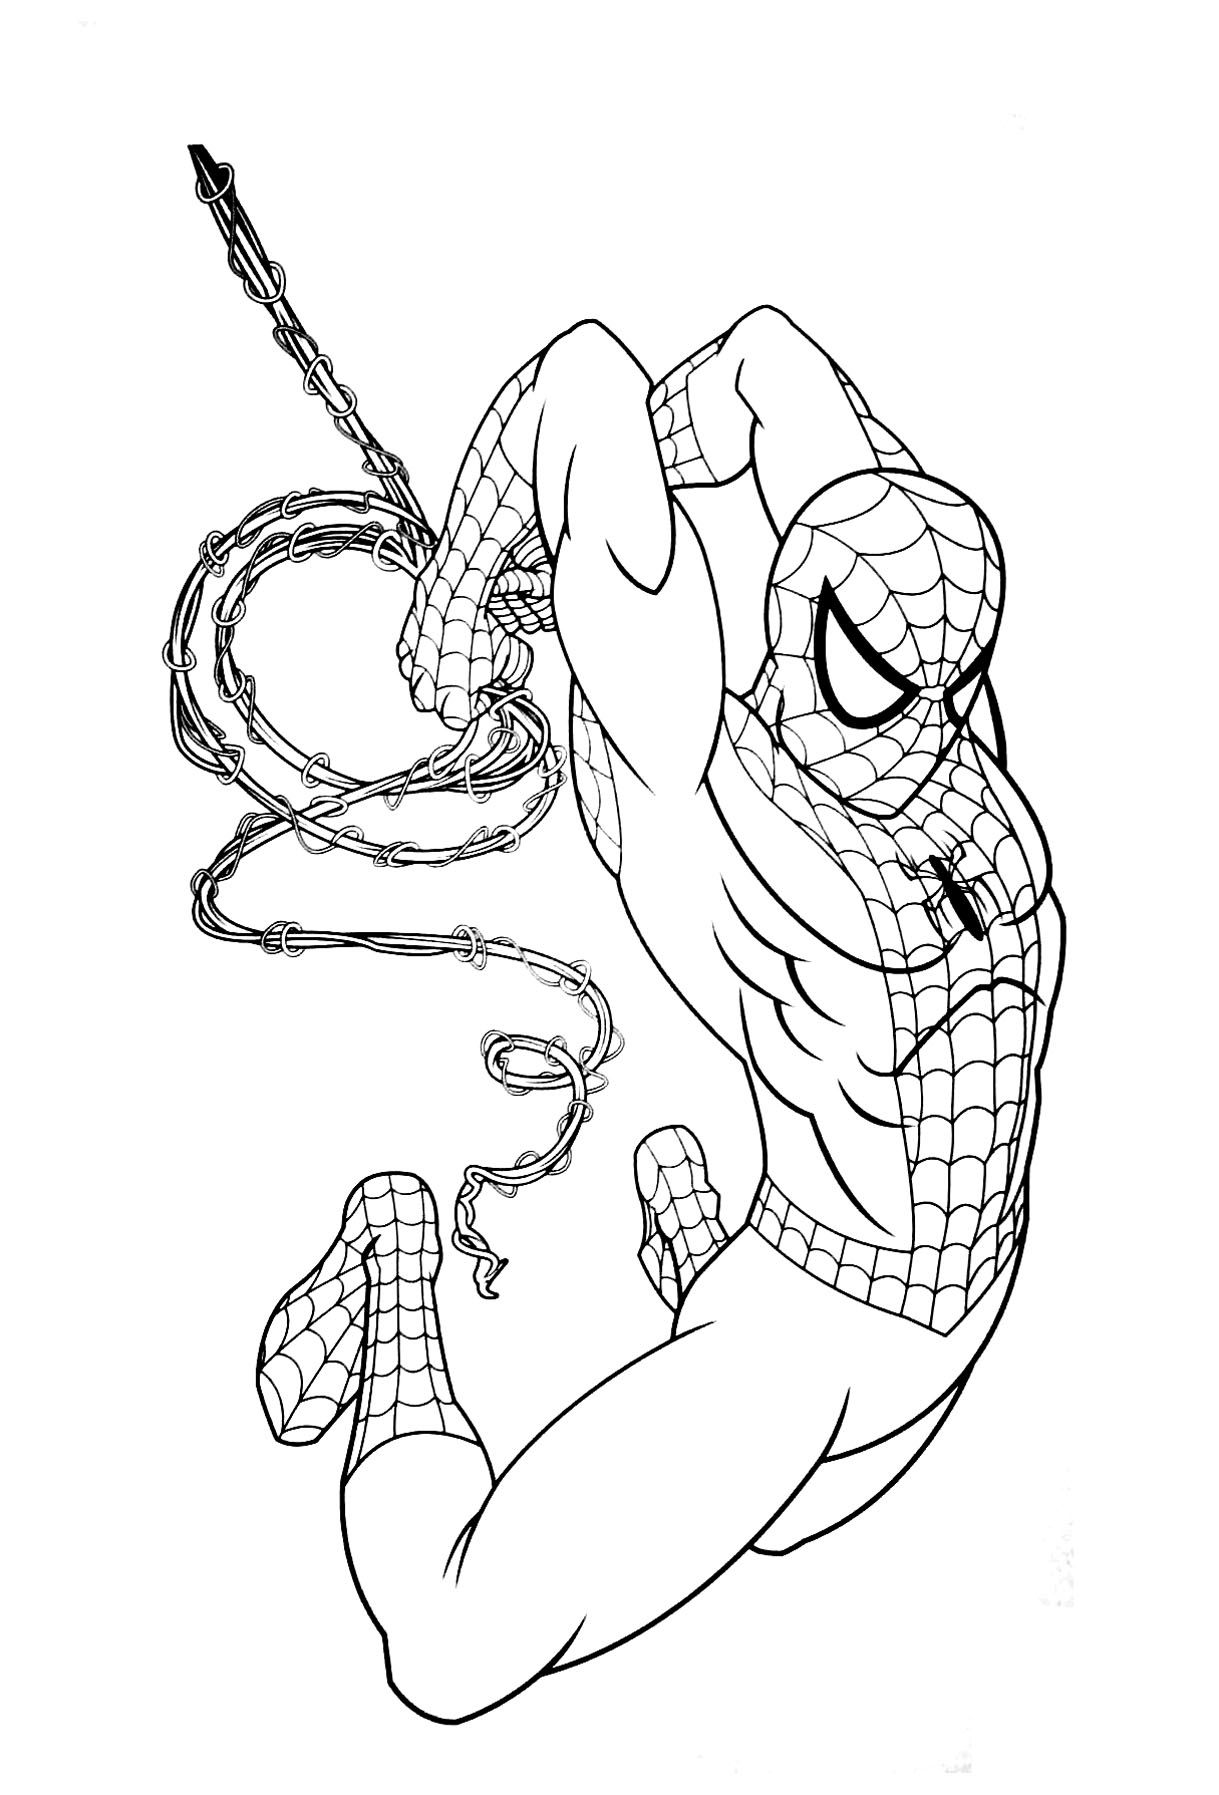 8300 Spiderman Comic Coloring Pages Download Free Images